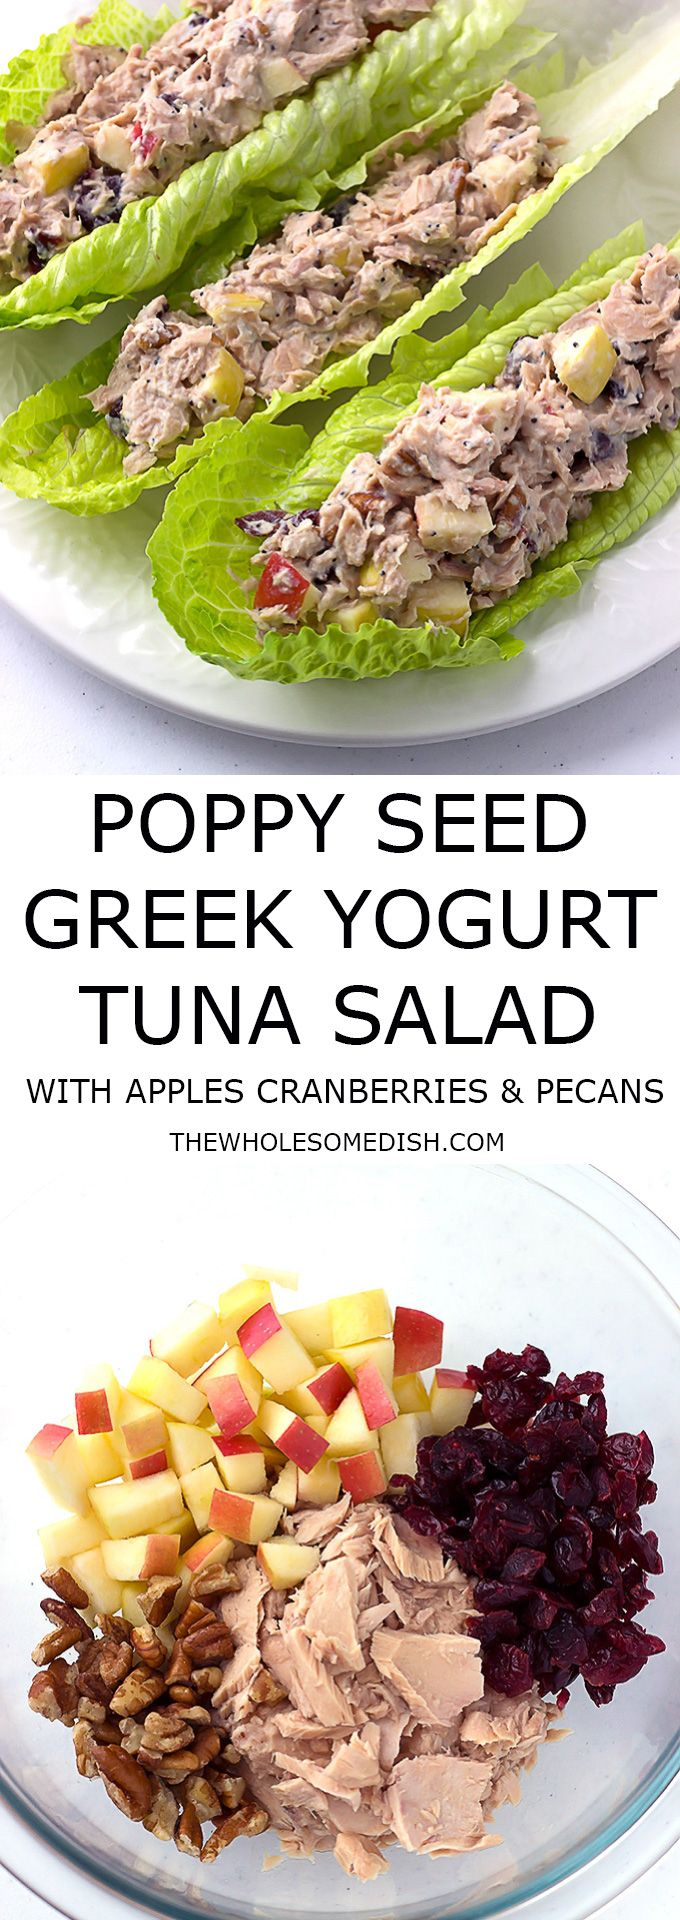 #ad Poppy Seed Greek Yogurt Tuna Salad with Apples Cranberries & Pecans - Serve it as a sandwich, wrap, on crackers, or on lettuce boats for a perfect low carb lunch. #Seafood2xWk